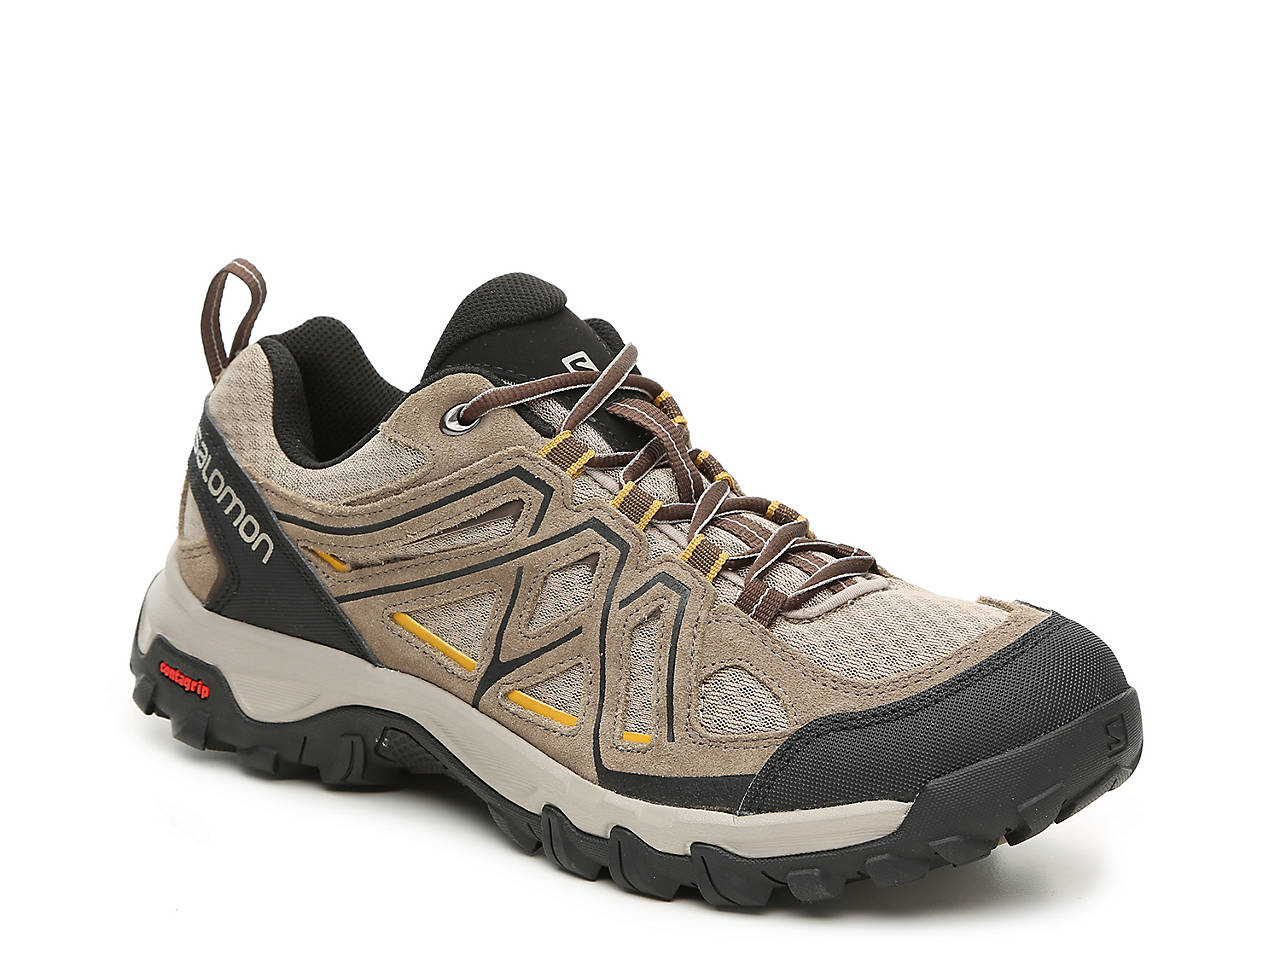 eafdeea851b Evasion 2 Aero Hiking Shoe